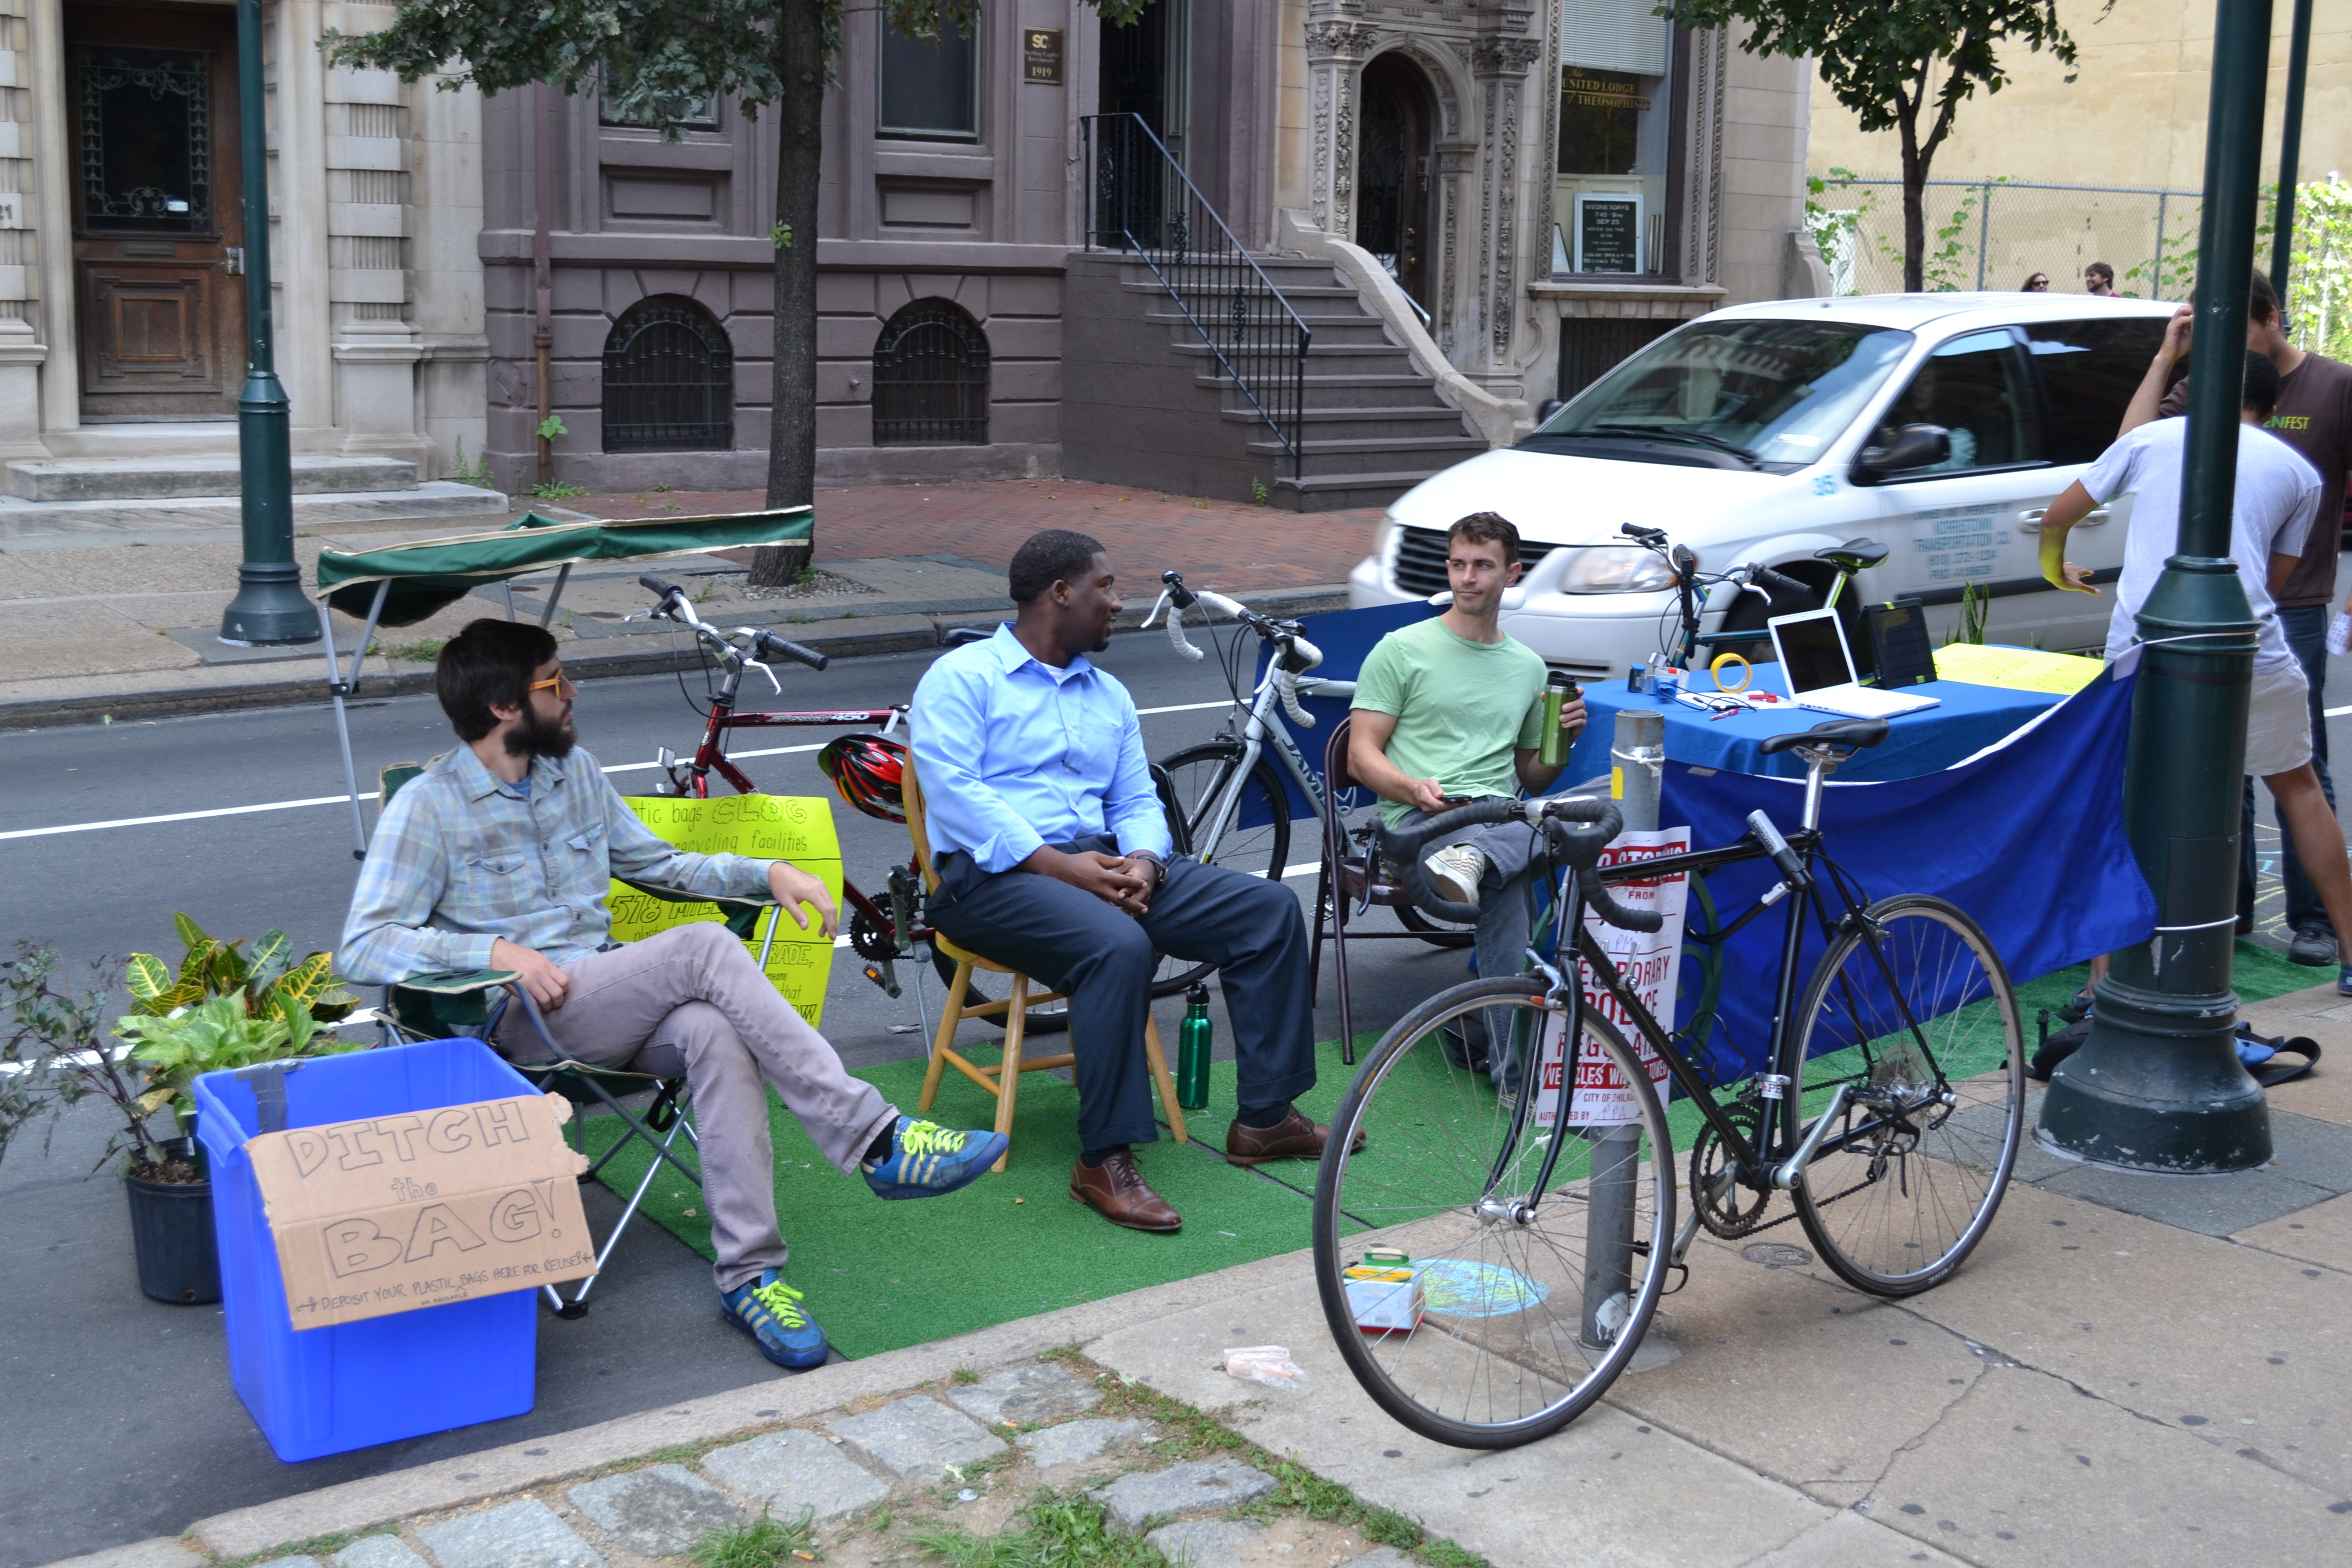 Park(ing) Day: Clean Air Council